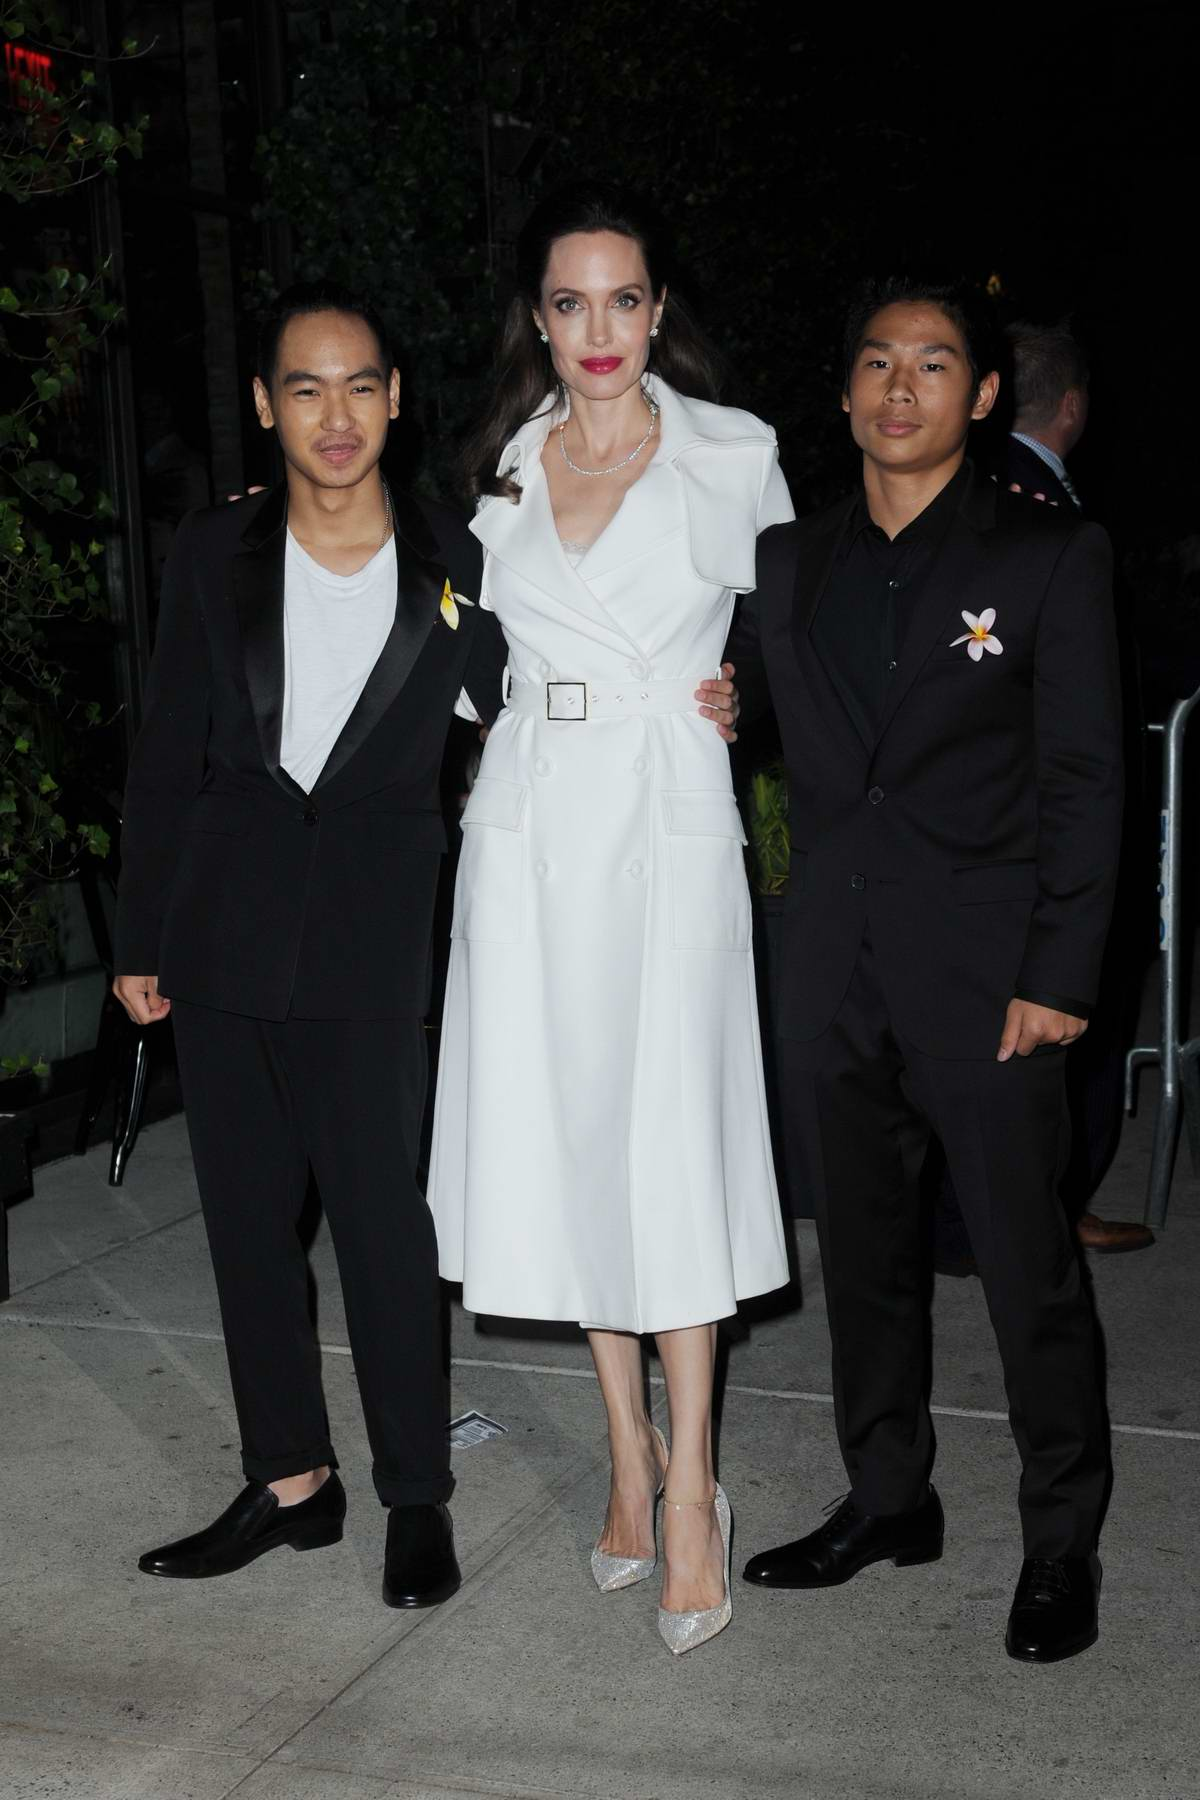 Angelina Jolie with her sons Maddox and Pax arrives for 'First They Killed My Father' premiere party